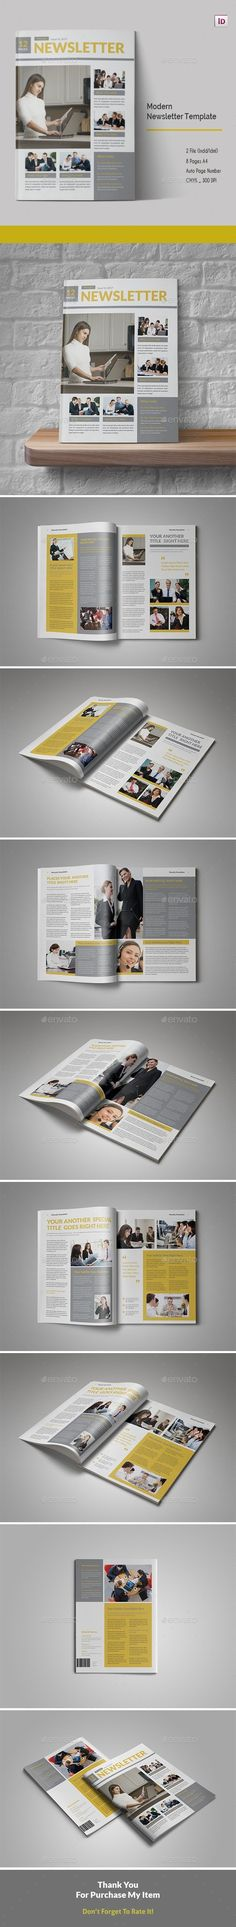 Modern Newsletter Template - Newsletters Print Templates Download here : https://graphicriver.net/item/modern-newsletter-template/19356792?s_rank=24&ref=Al-fatih